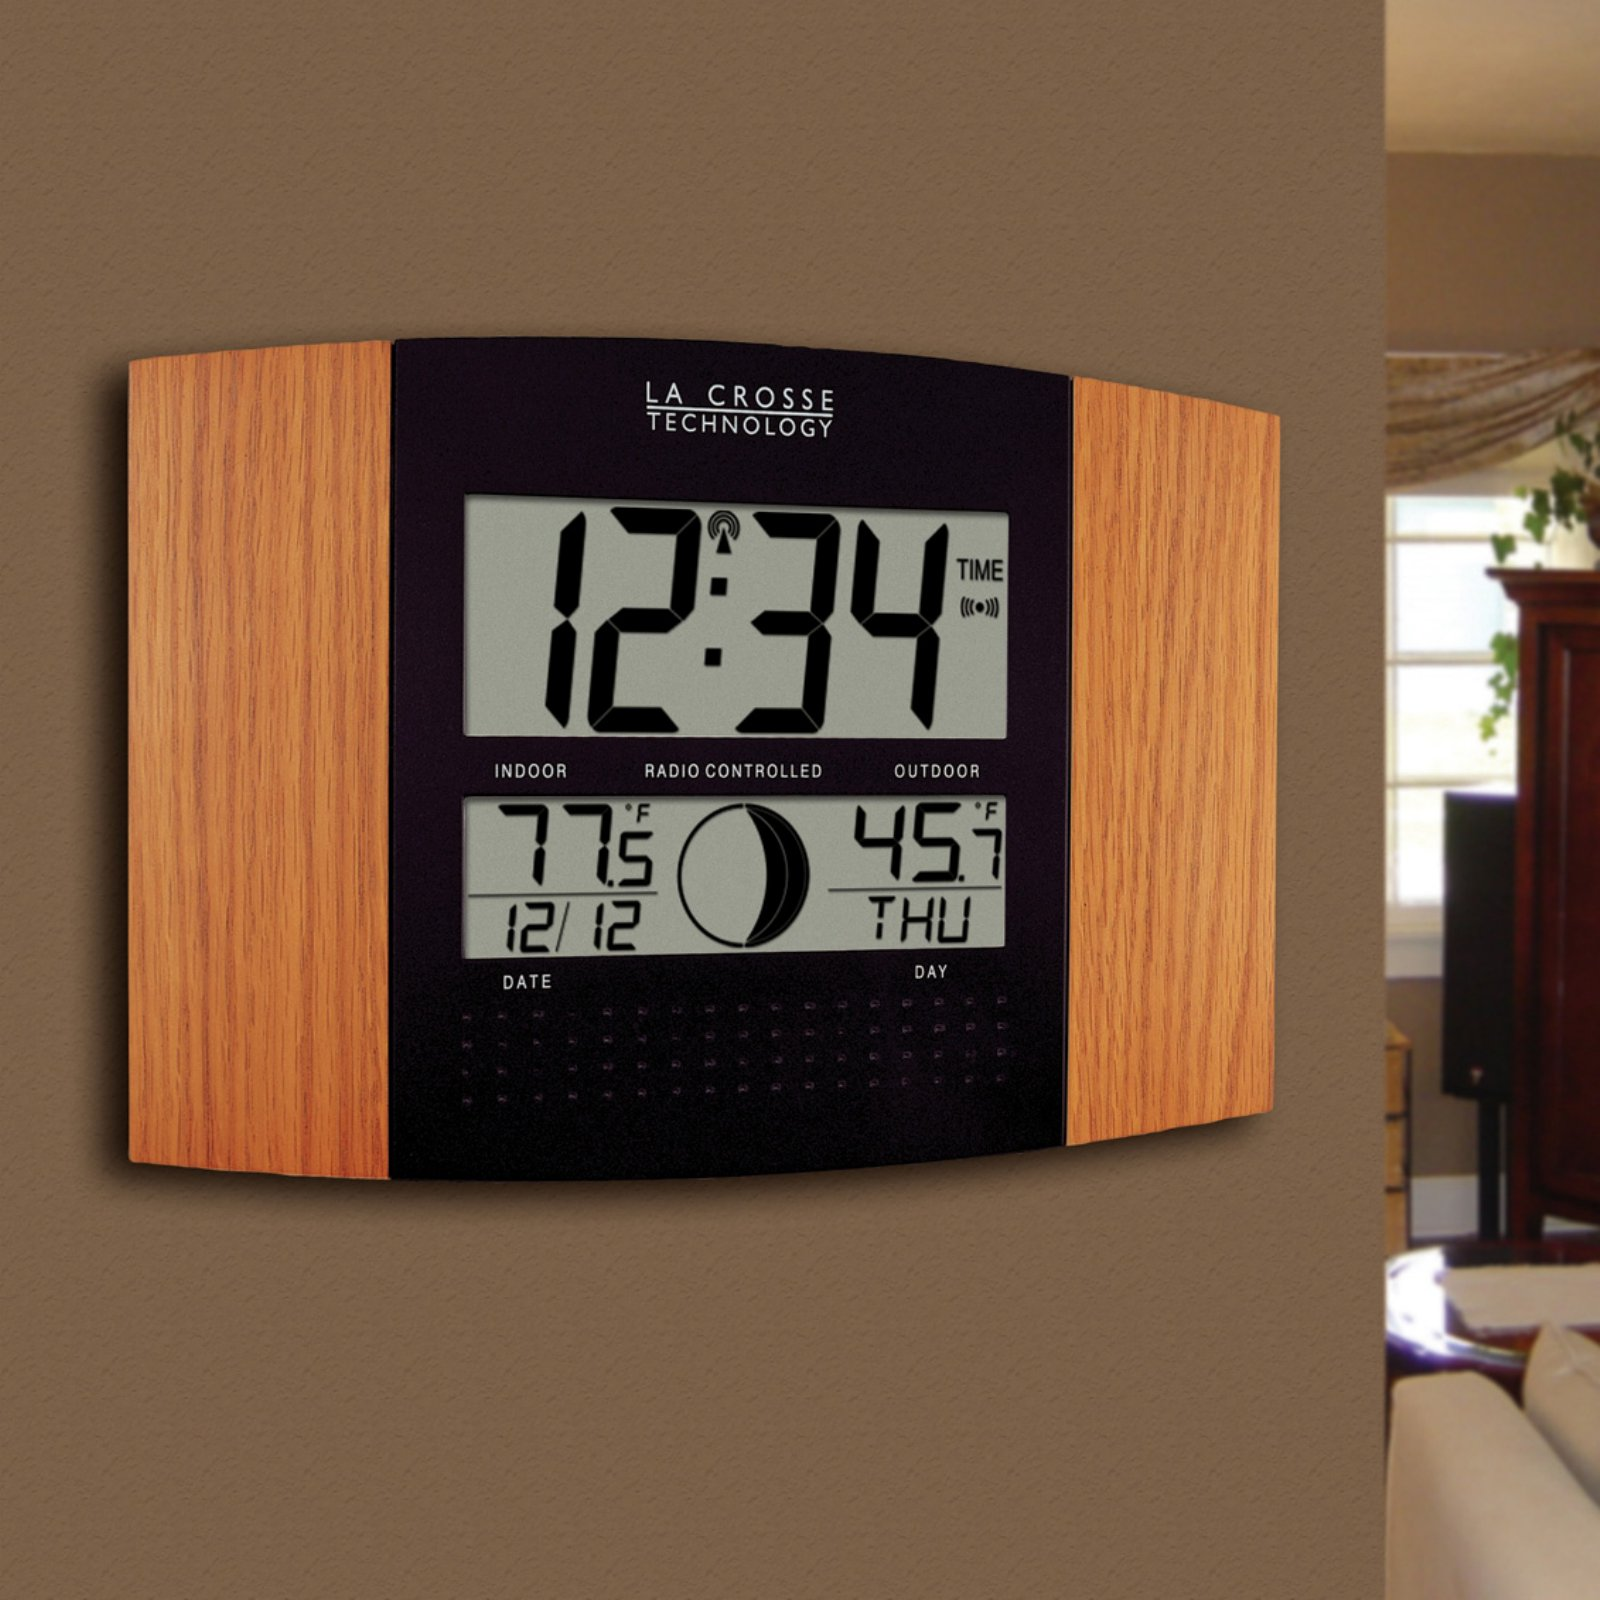 Atomic wall clock with outdoor temperature by la crosse 122 atomic wall clock with outdoor temperature by la crosse 122 inches wide walmart amipublicfo Gallery